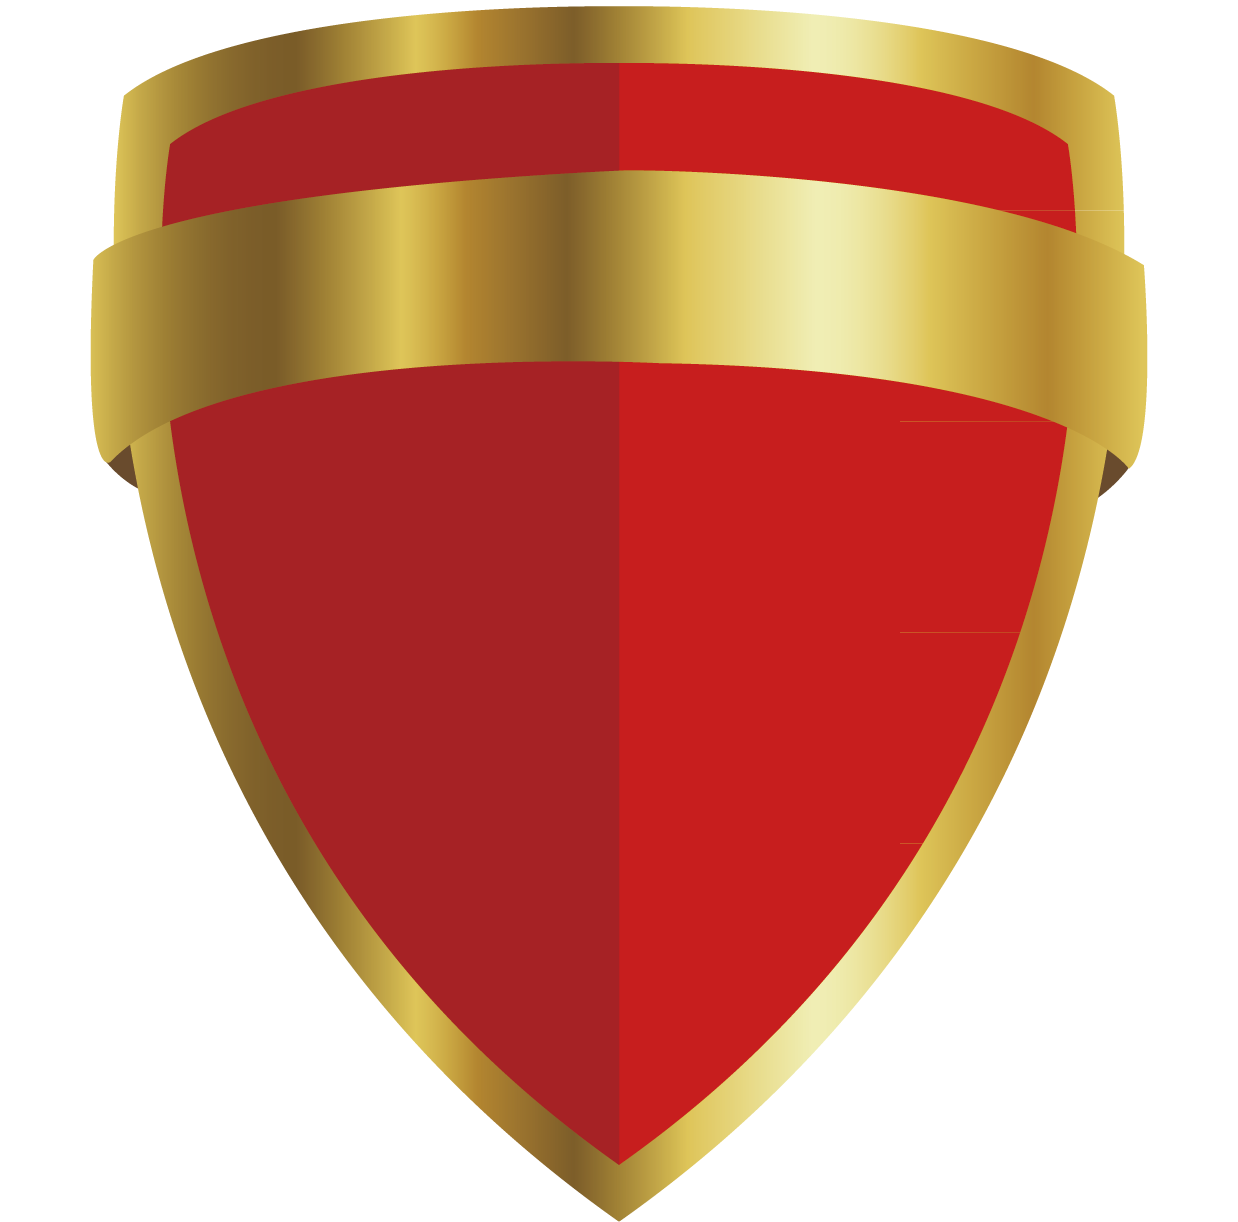 Clipart shield red black. Icon transprent png free